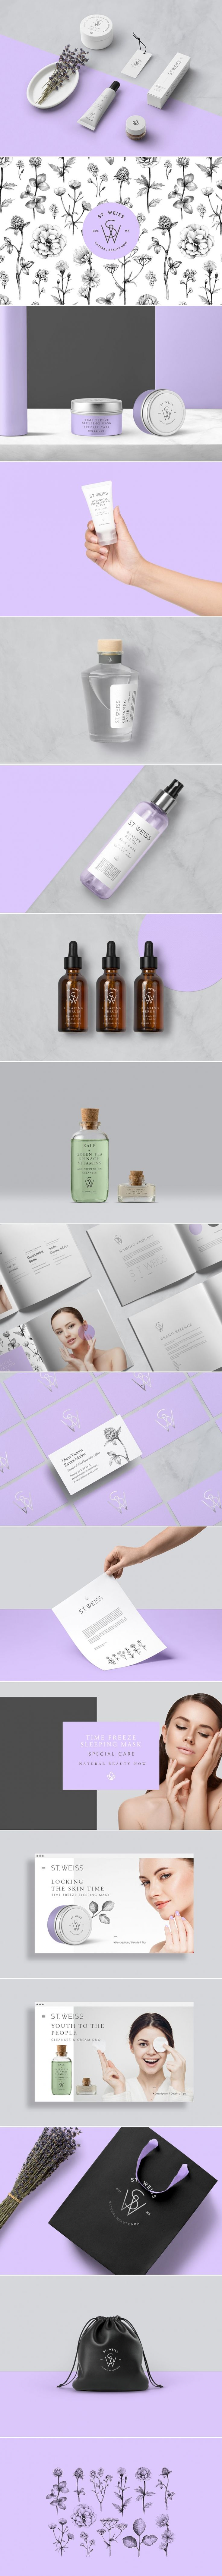 St. Weiss is an Elegant Mexican Skincare Brand — The Dieline   Packaging & Branding Design & Innovation News